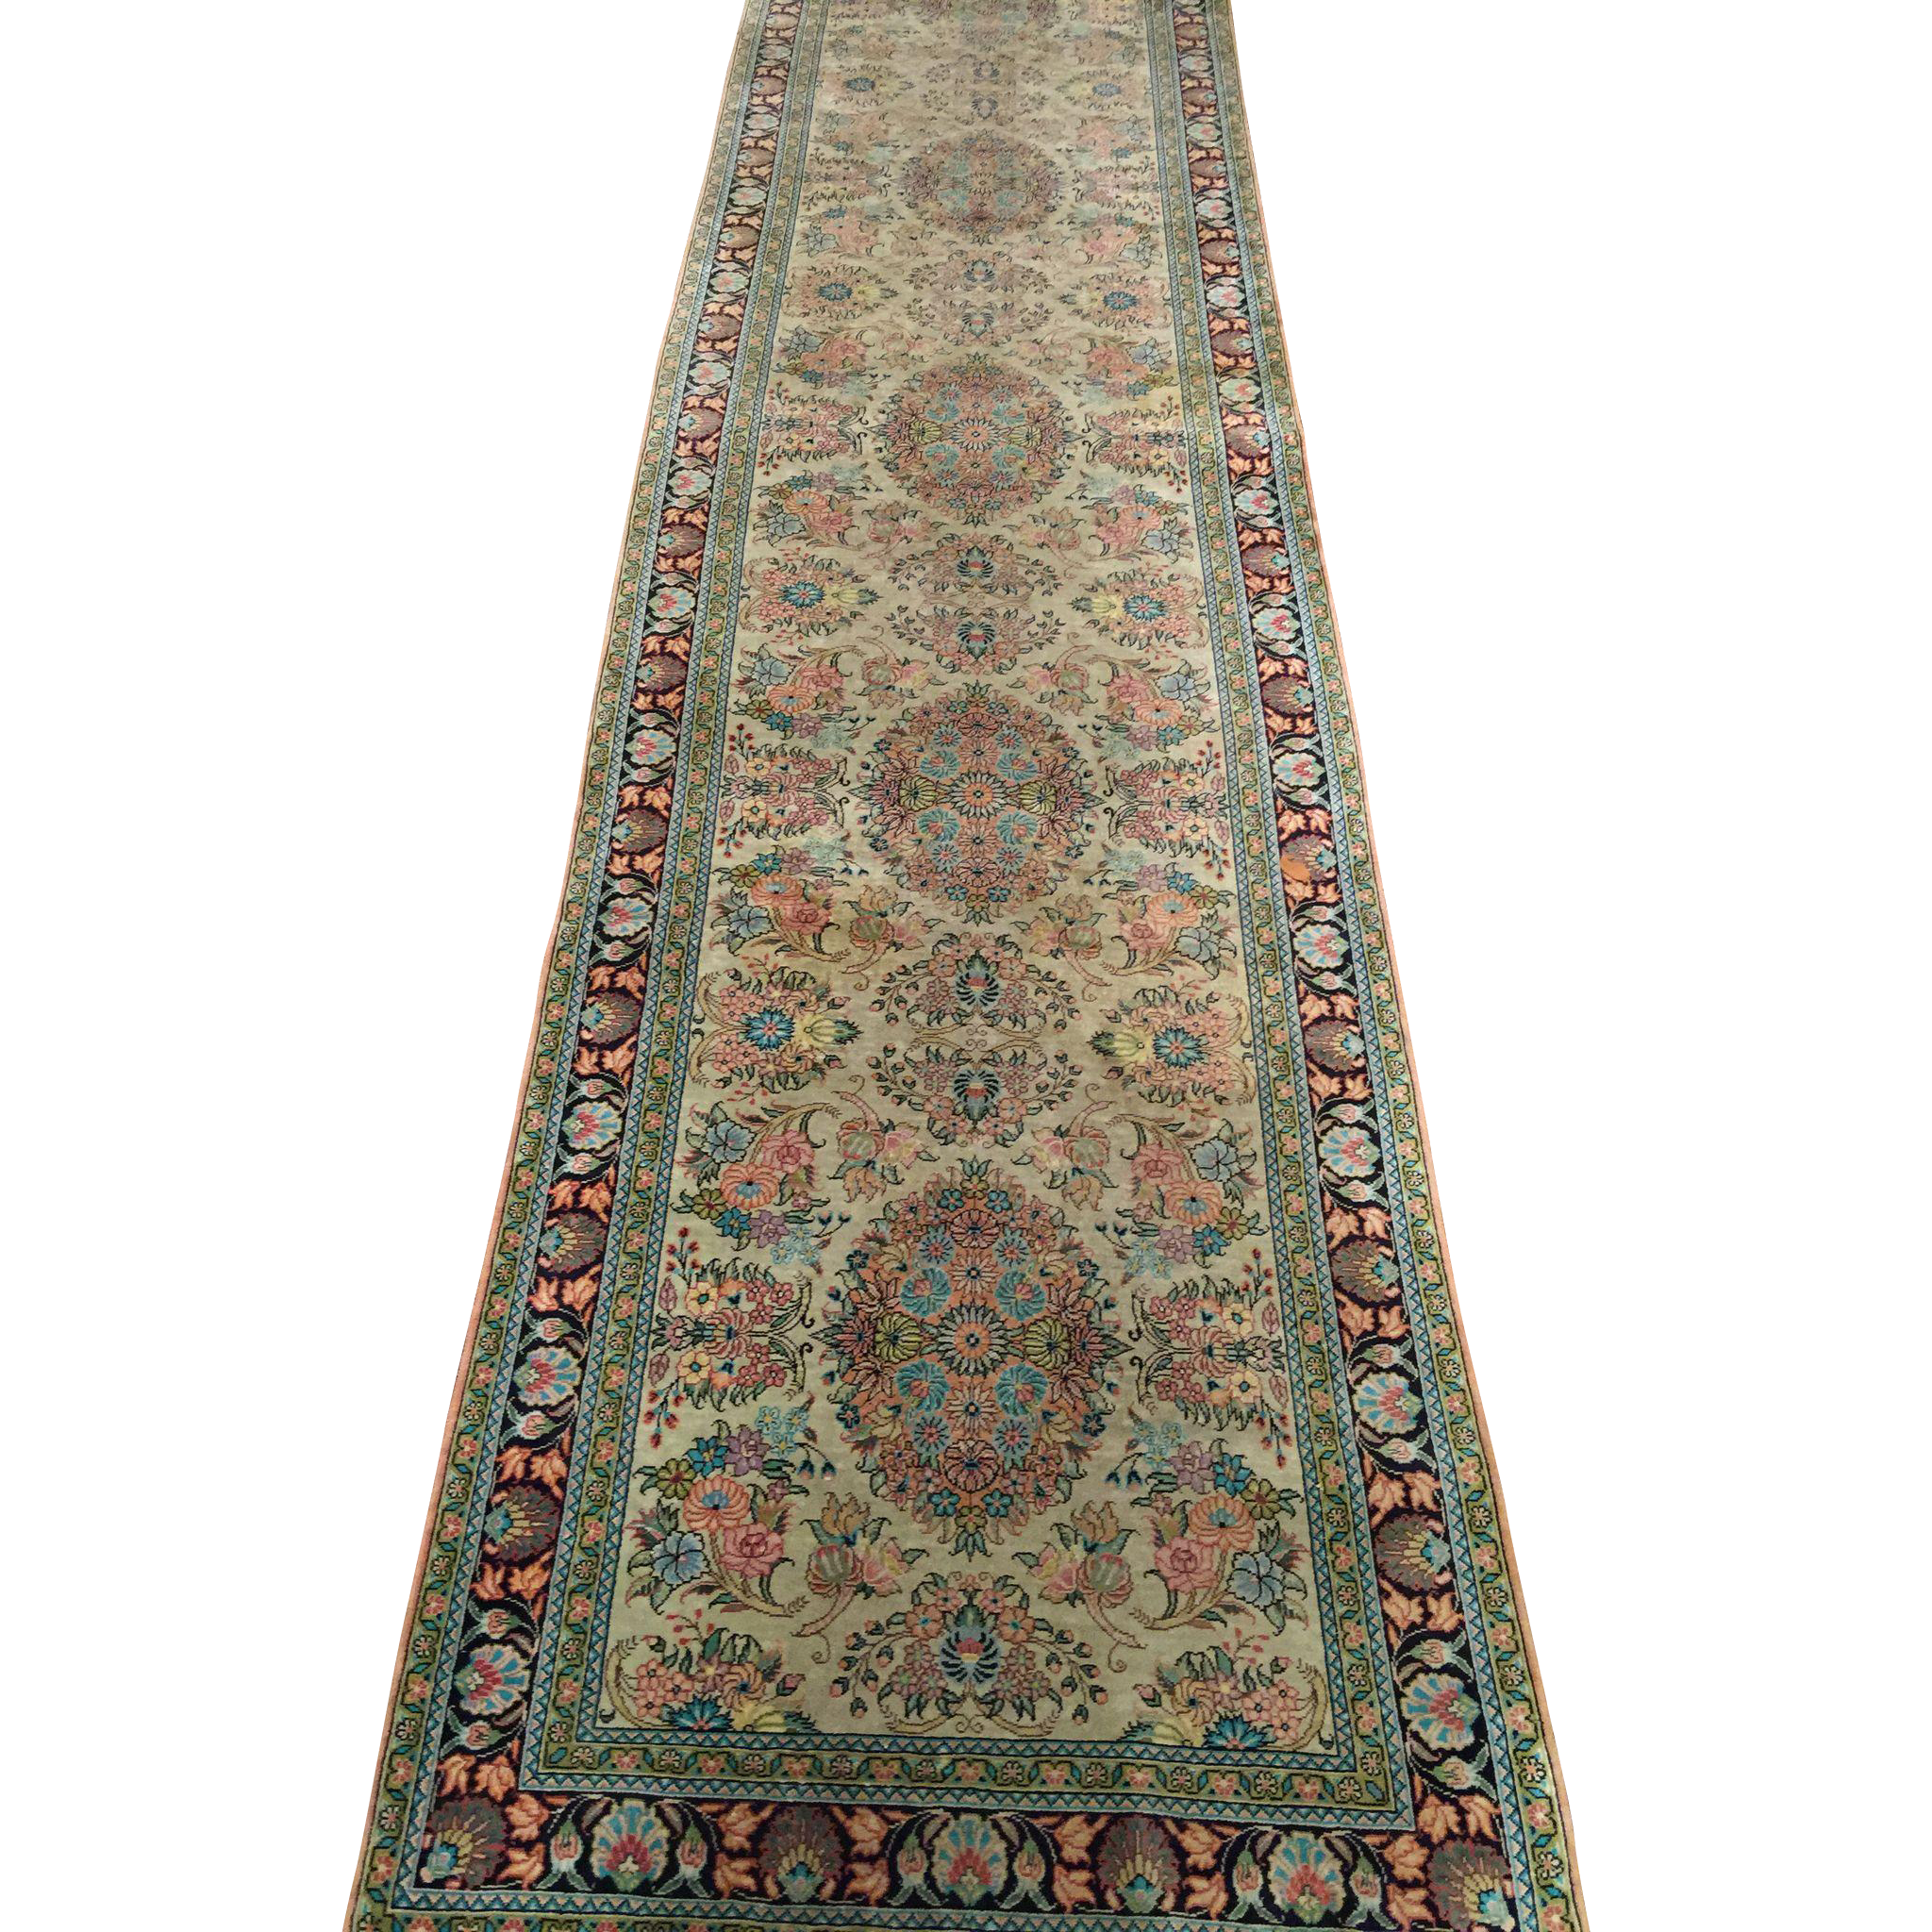 10 Foot Carpet Runner Ideas